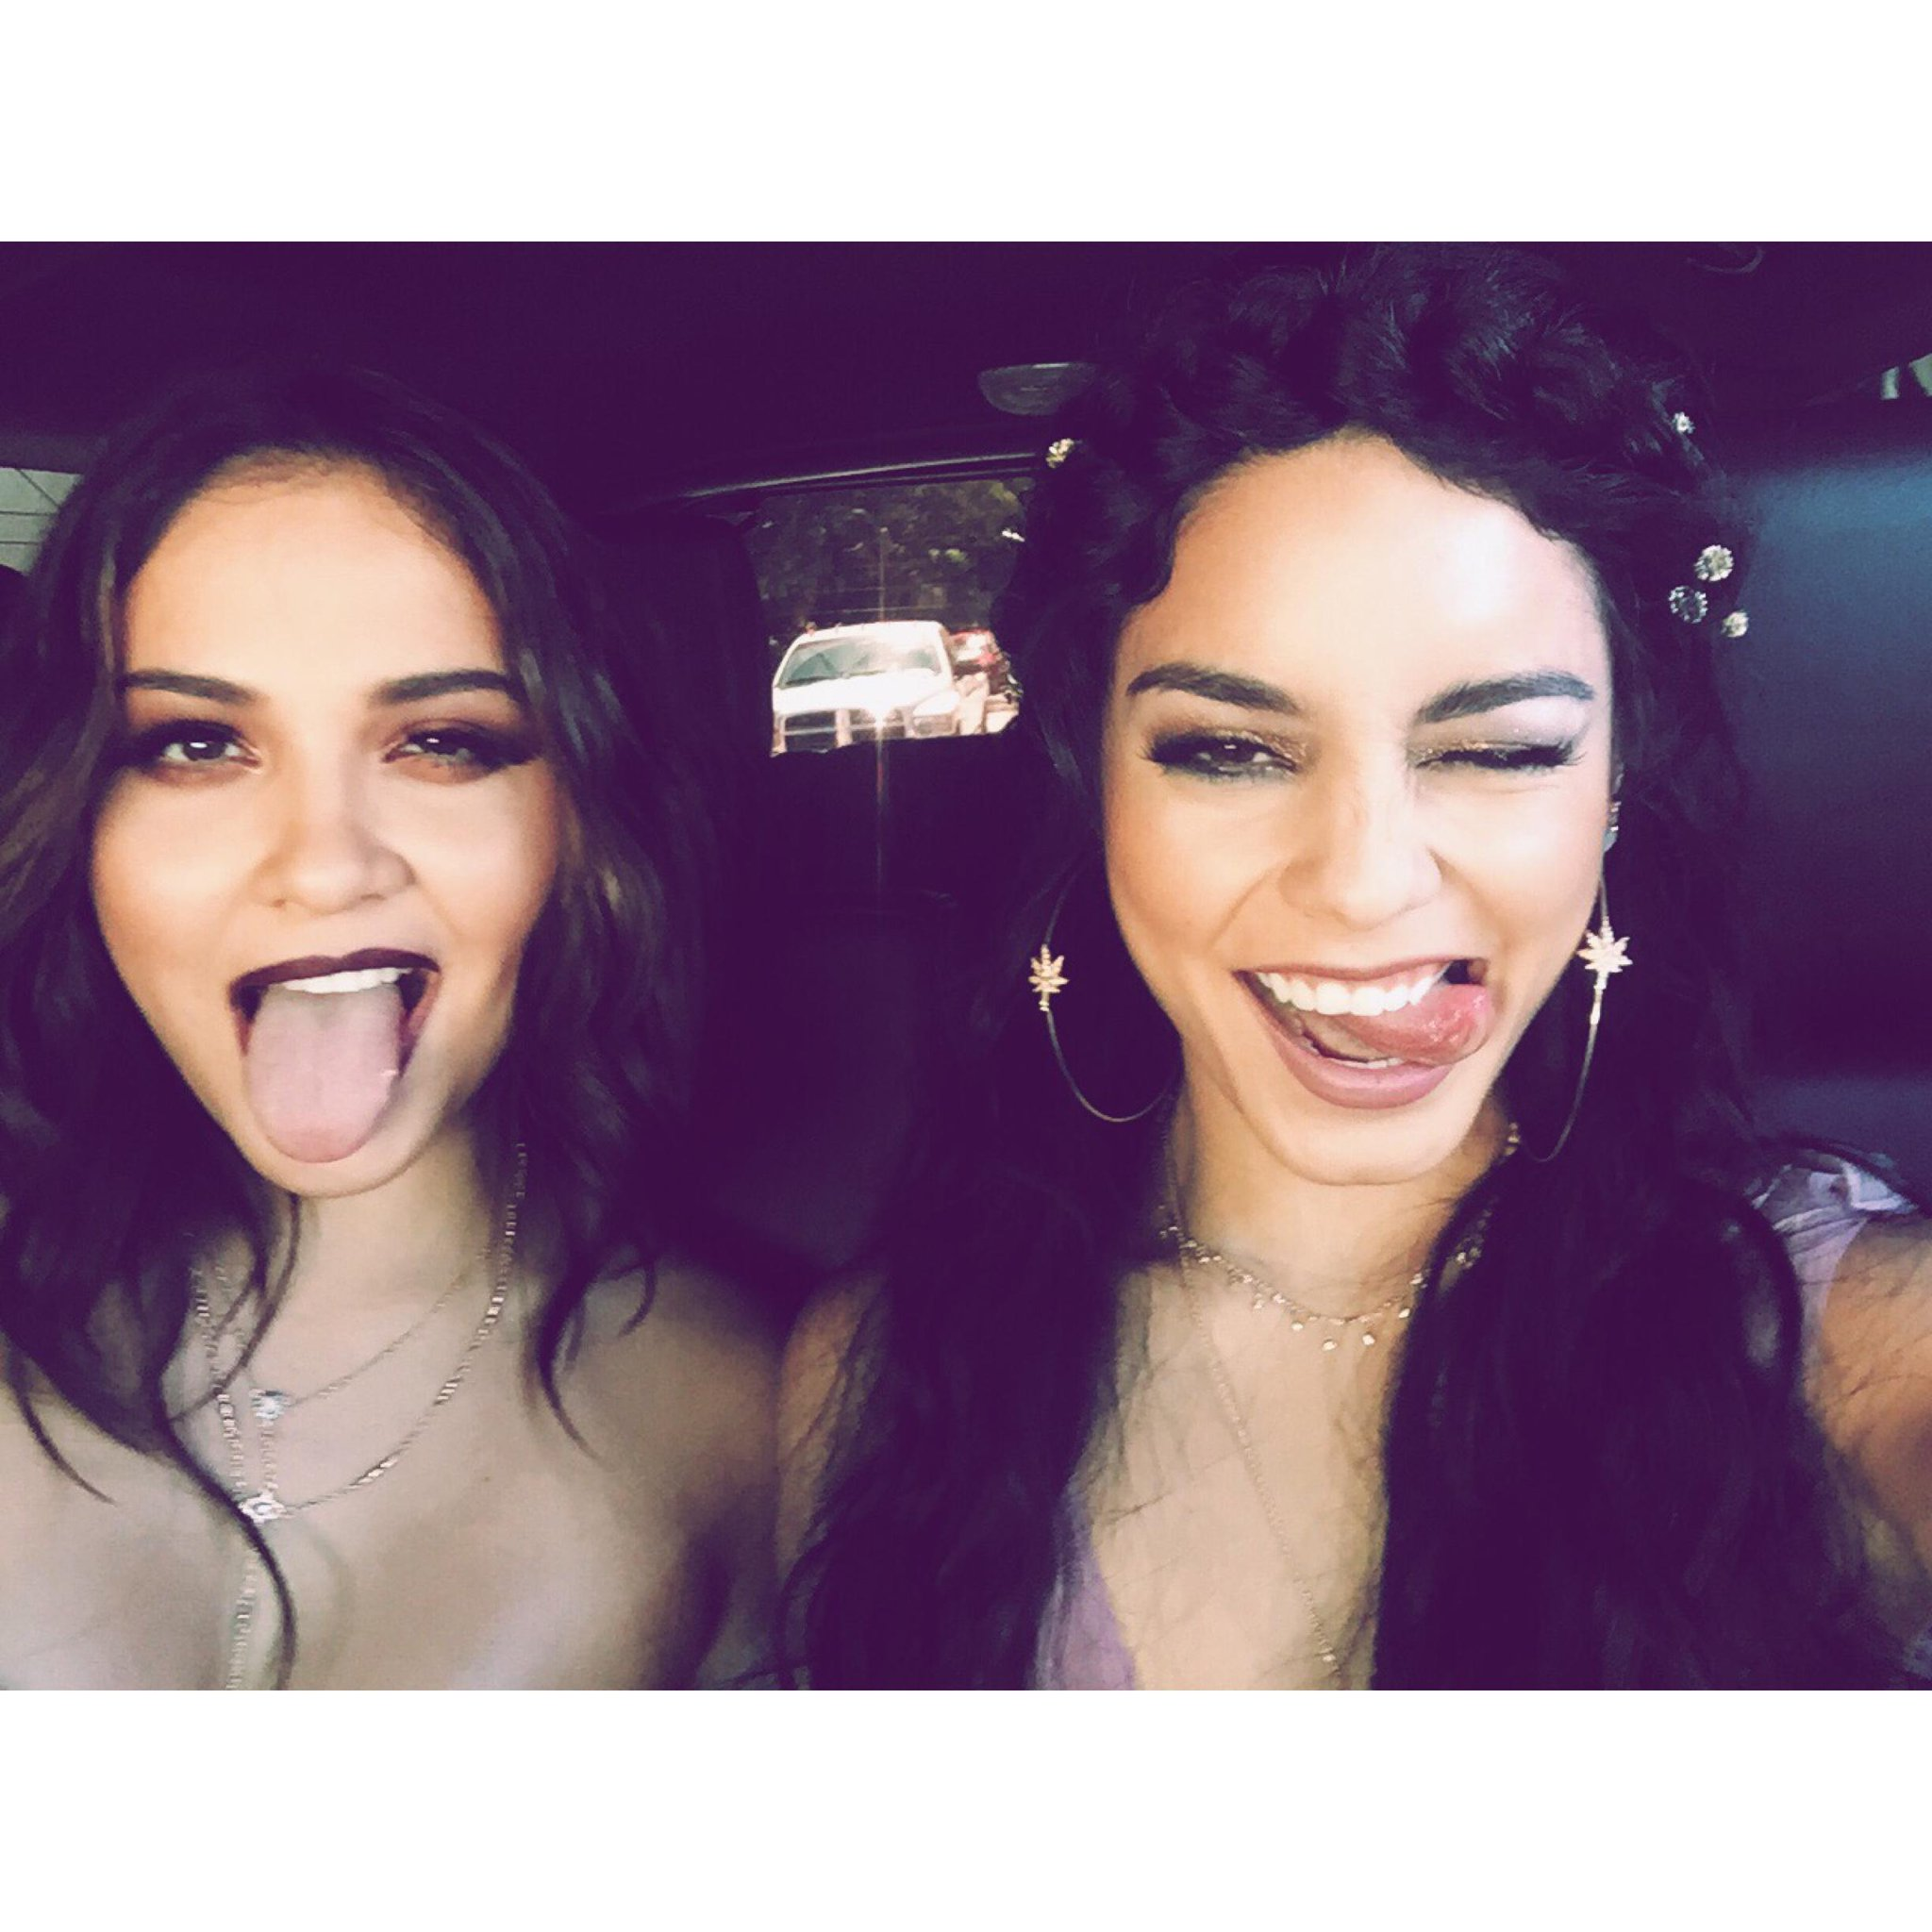 En route with @StellaHudgens! Follow MTV on @PeriscopeCo to meet me at the #VMAs w/ @VerizonWireless #WhyNotWednesday http://t.co/xJOIYRM6Er